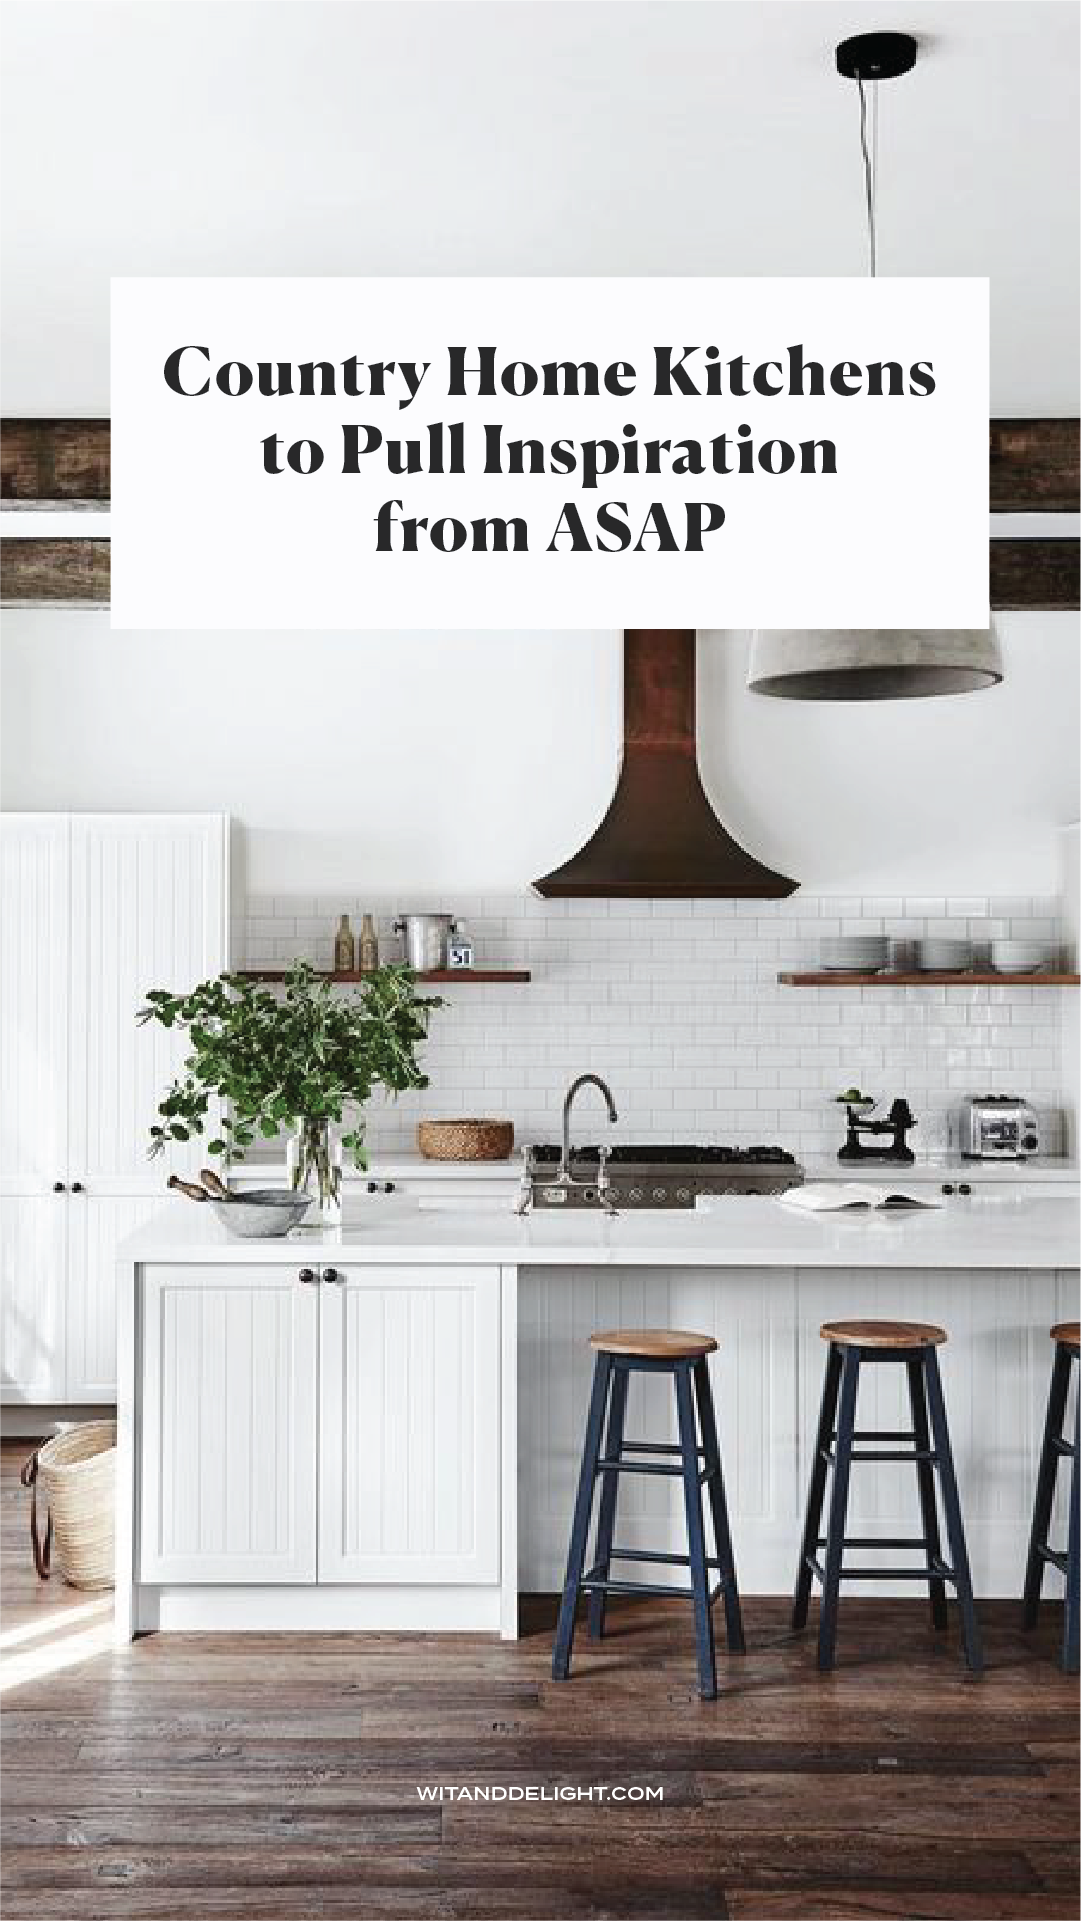 Country Home Kitchens to Pull Inspiration from ASAP   Kitchens ...